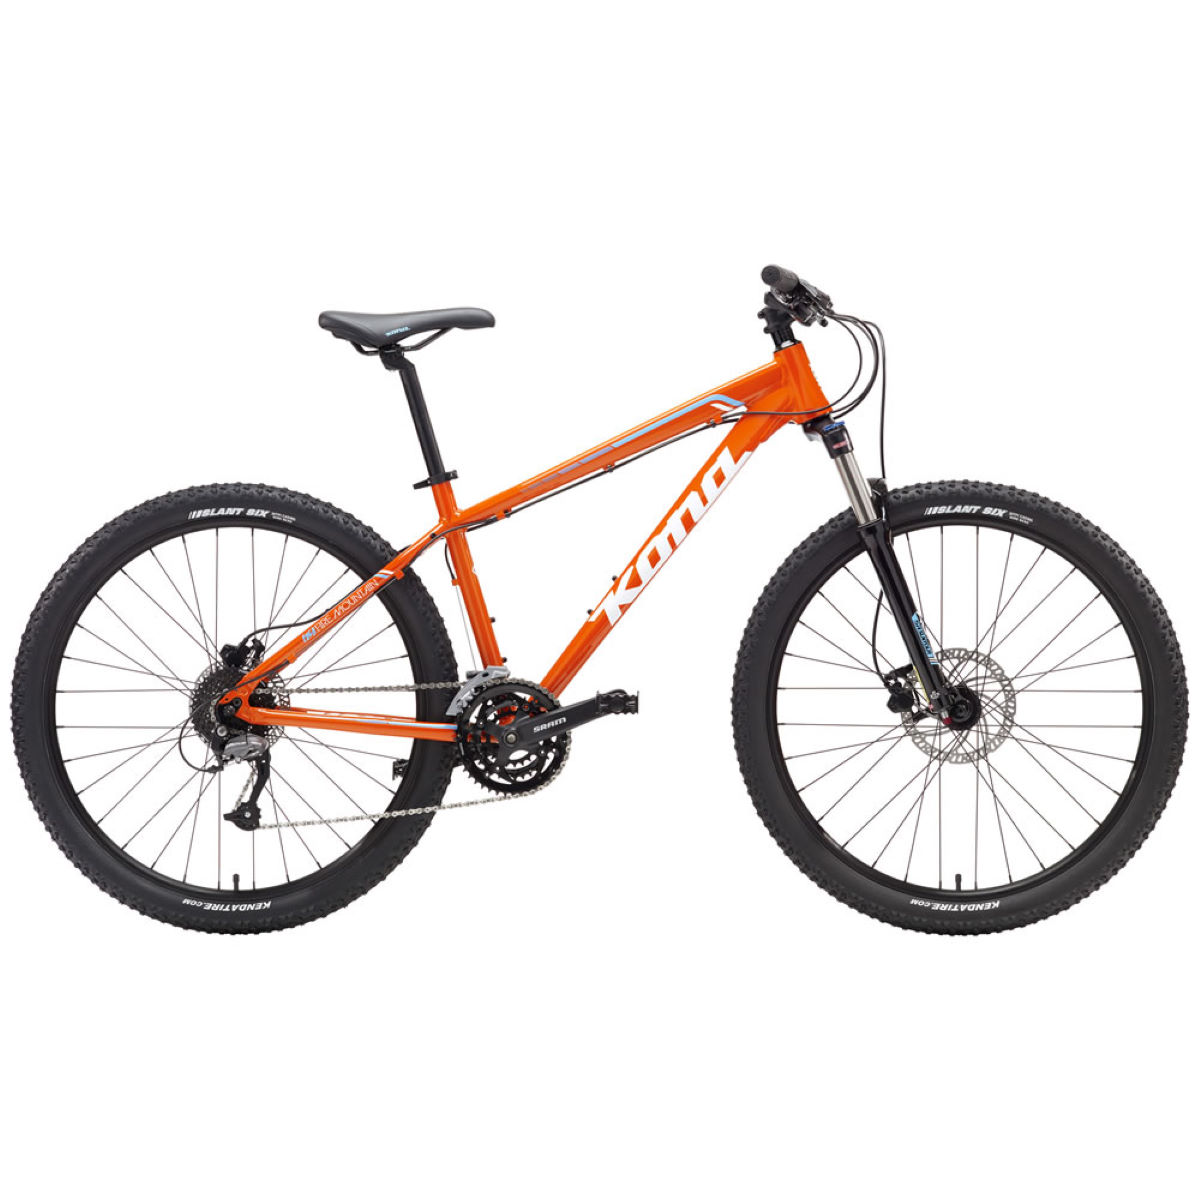 VTT Kona Fire Mountain (2017) - L Orange VTT semi-rigides